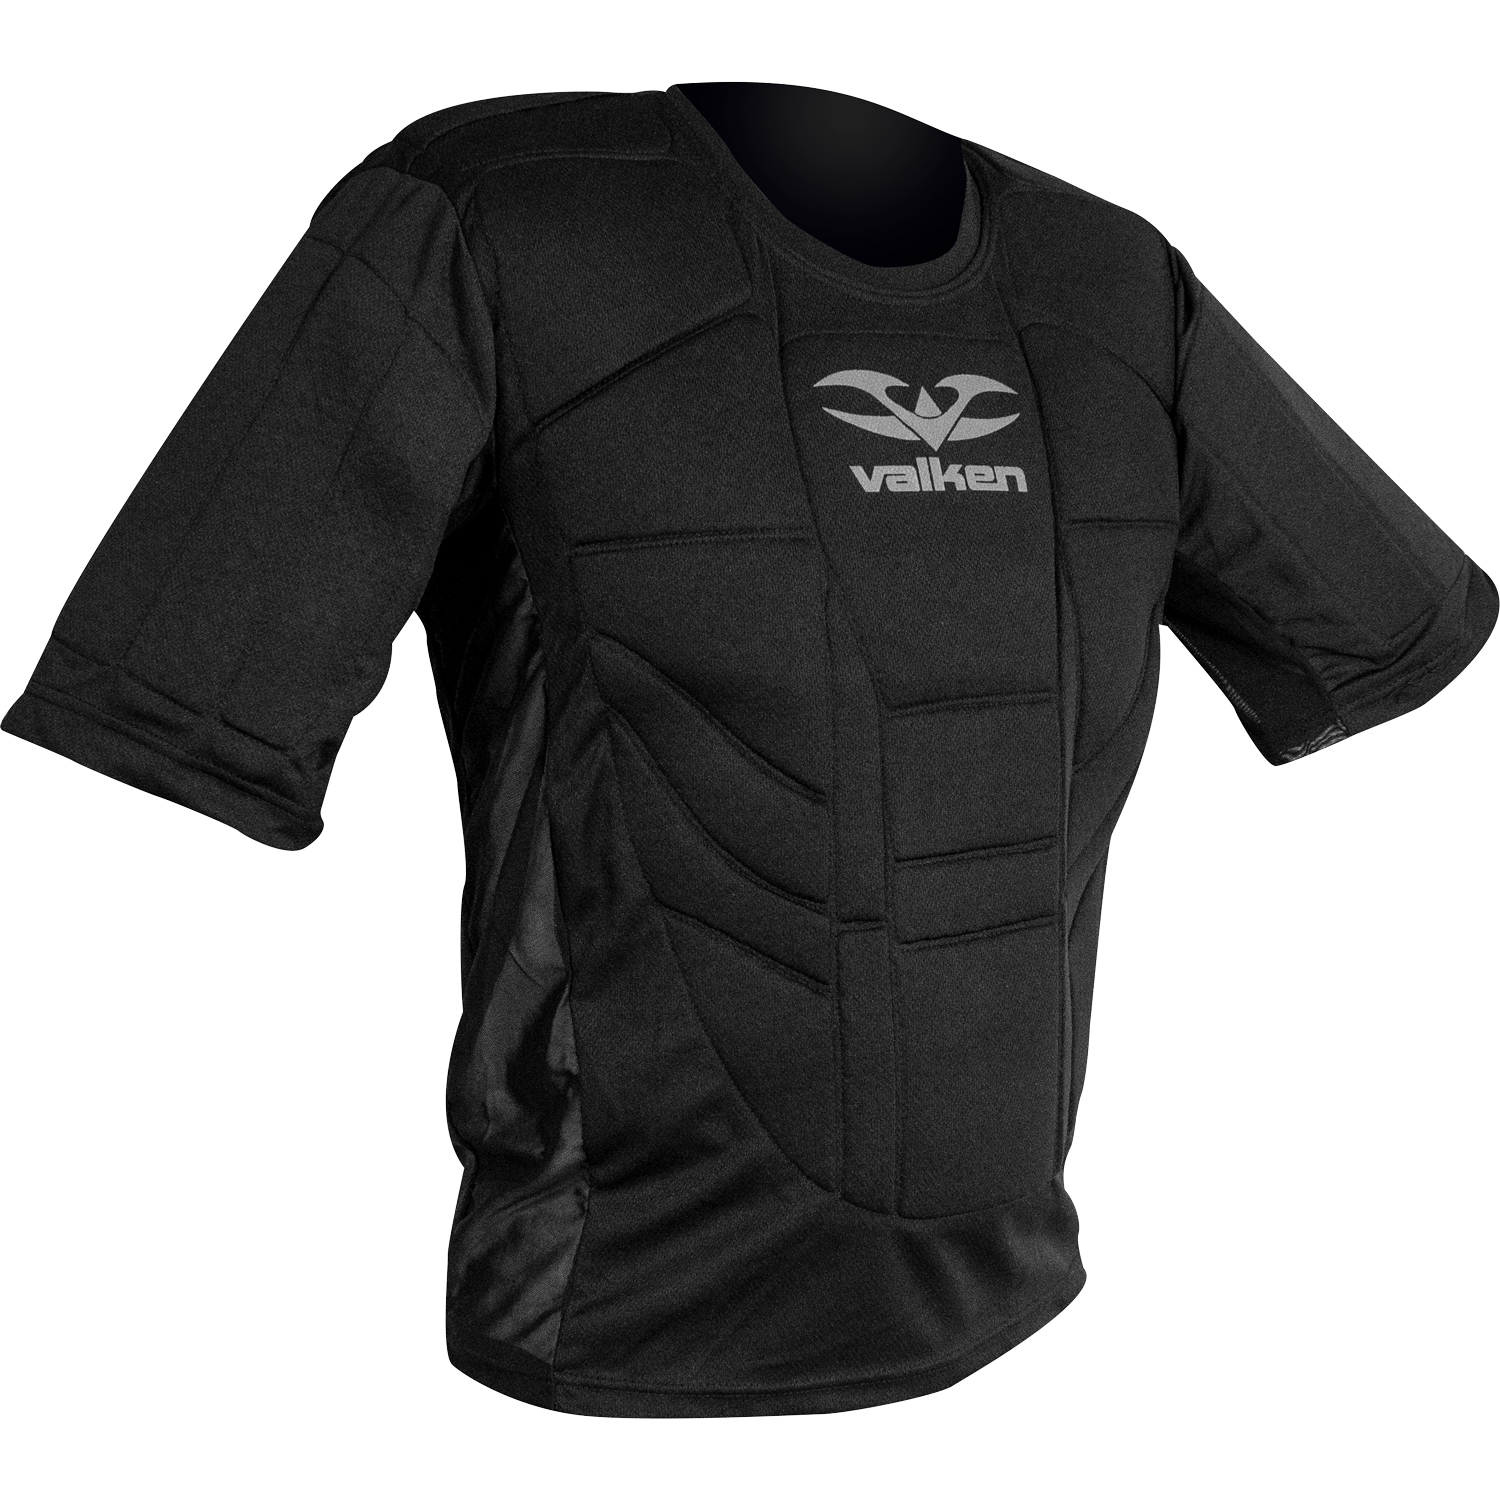 Valken Paintball Impact Padded Shirt/Chest Protector